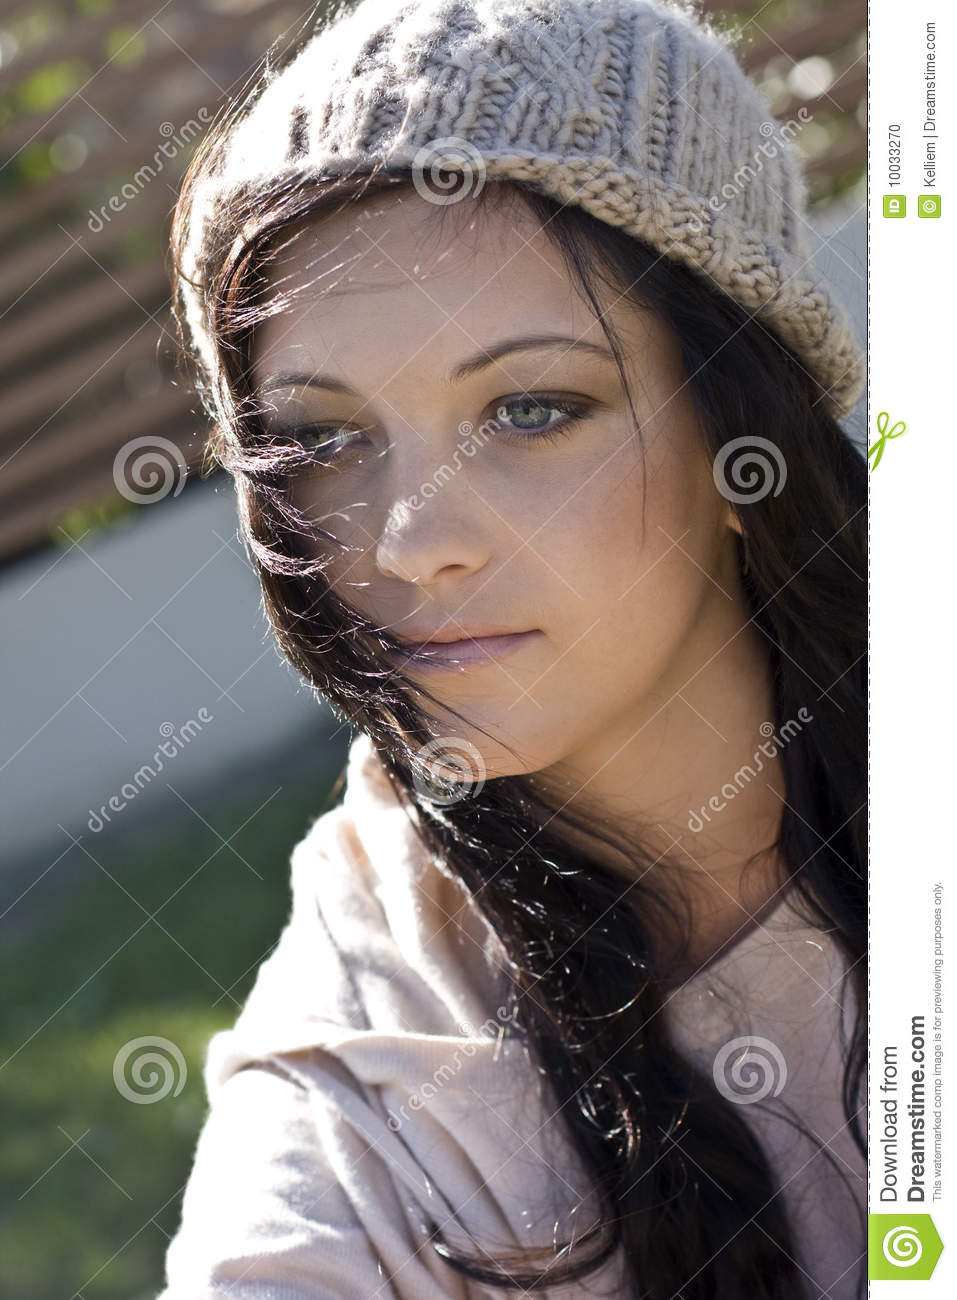 An outdoor portrait of a young, pretty, teenage girl wearing a knit ...